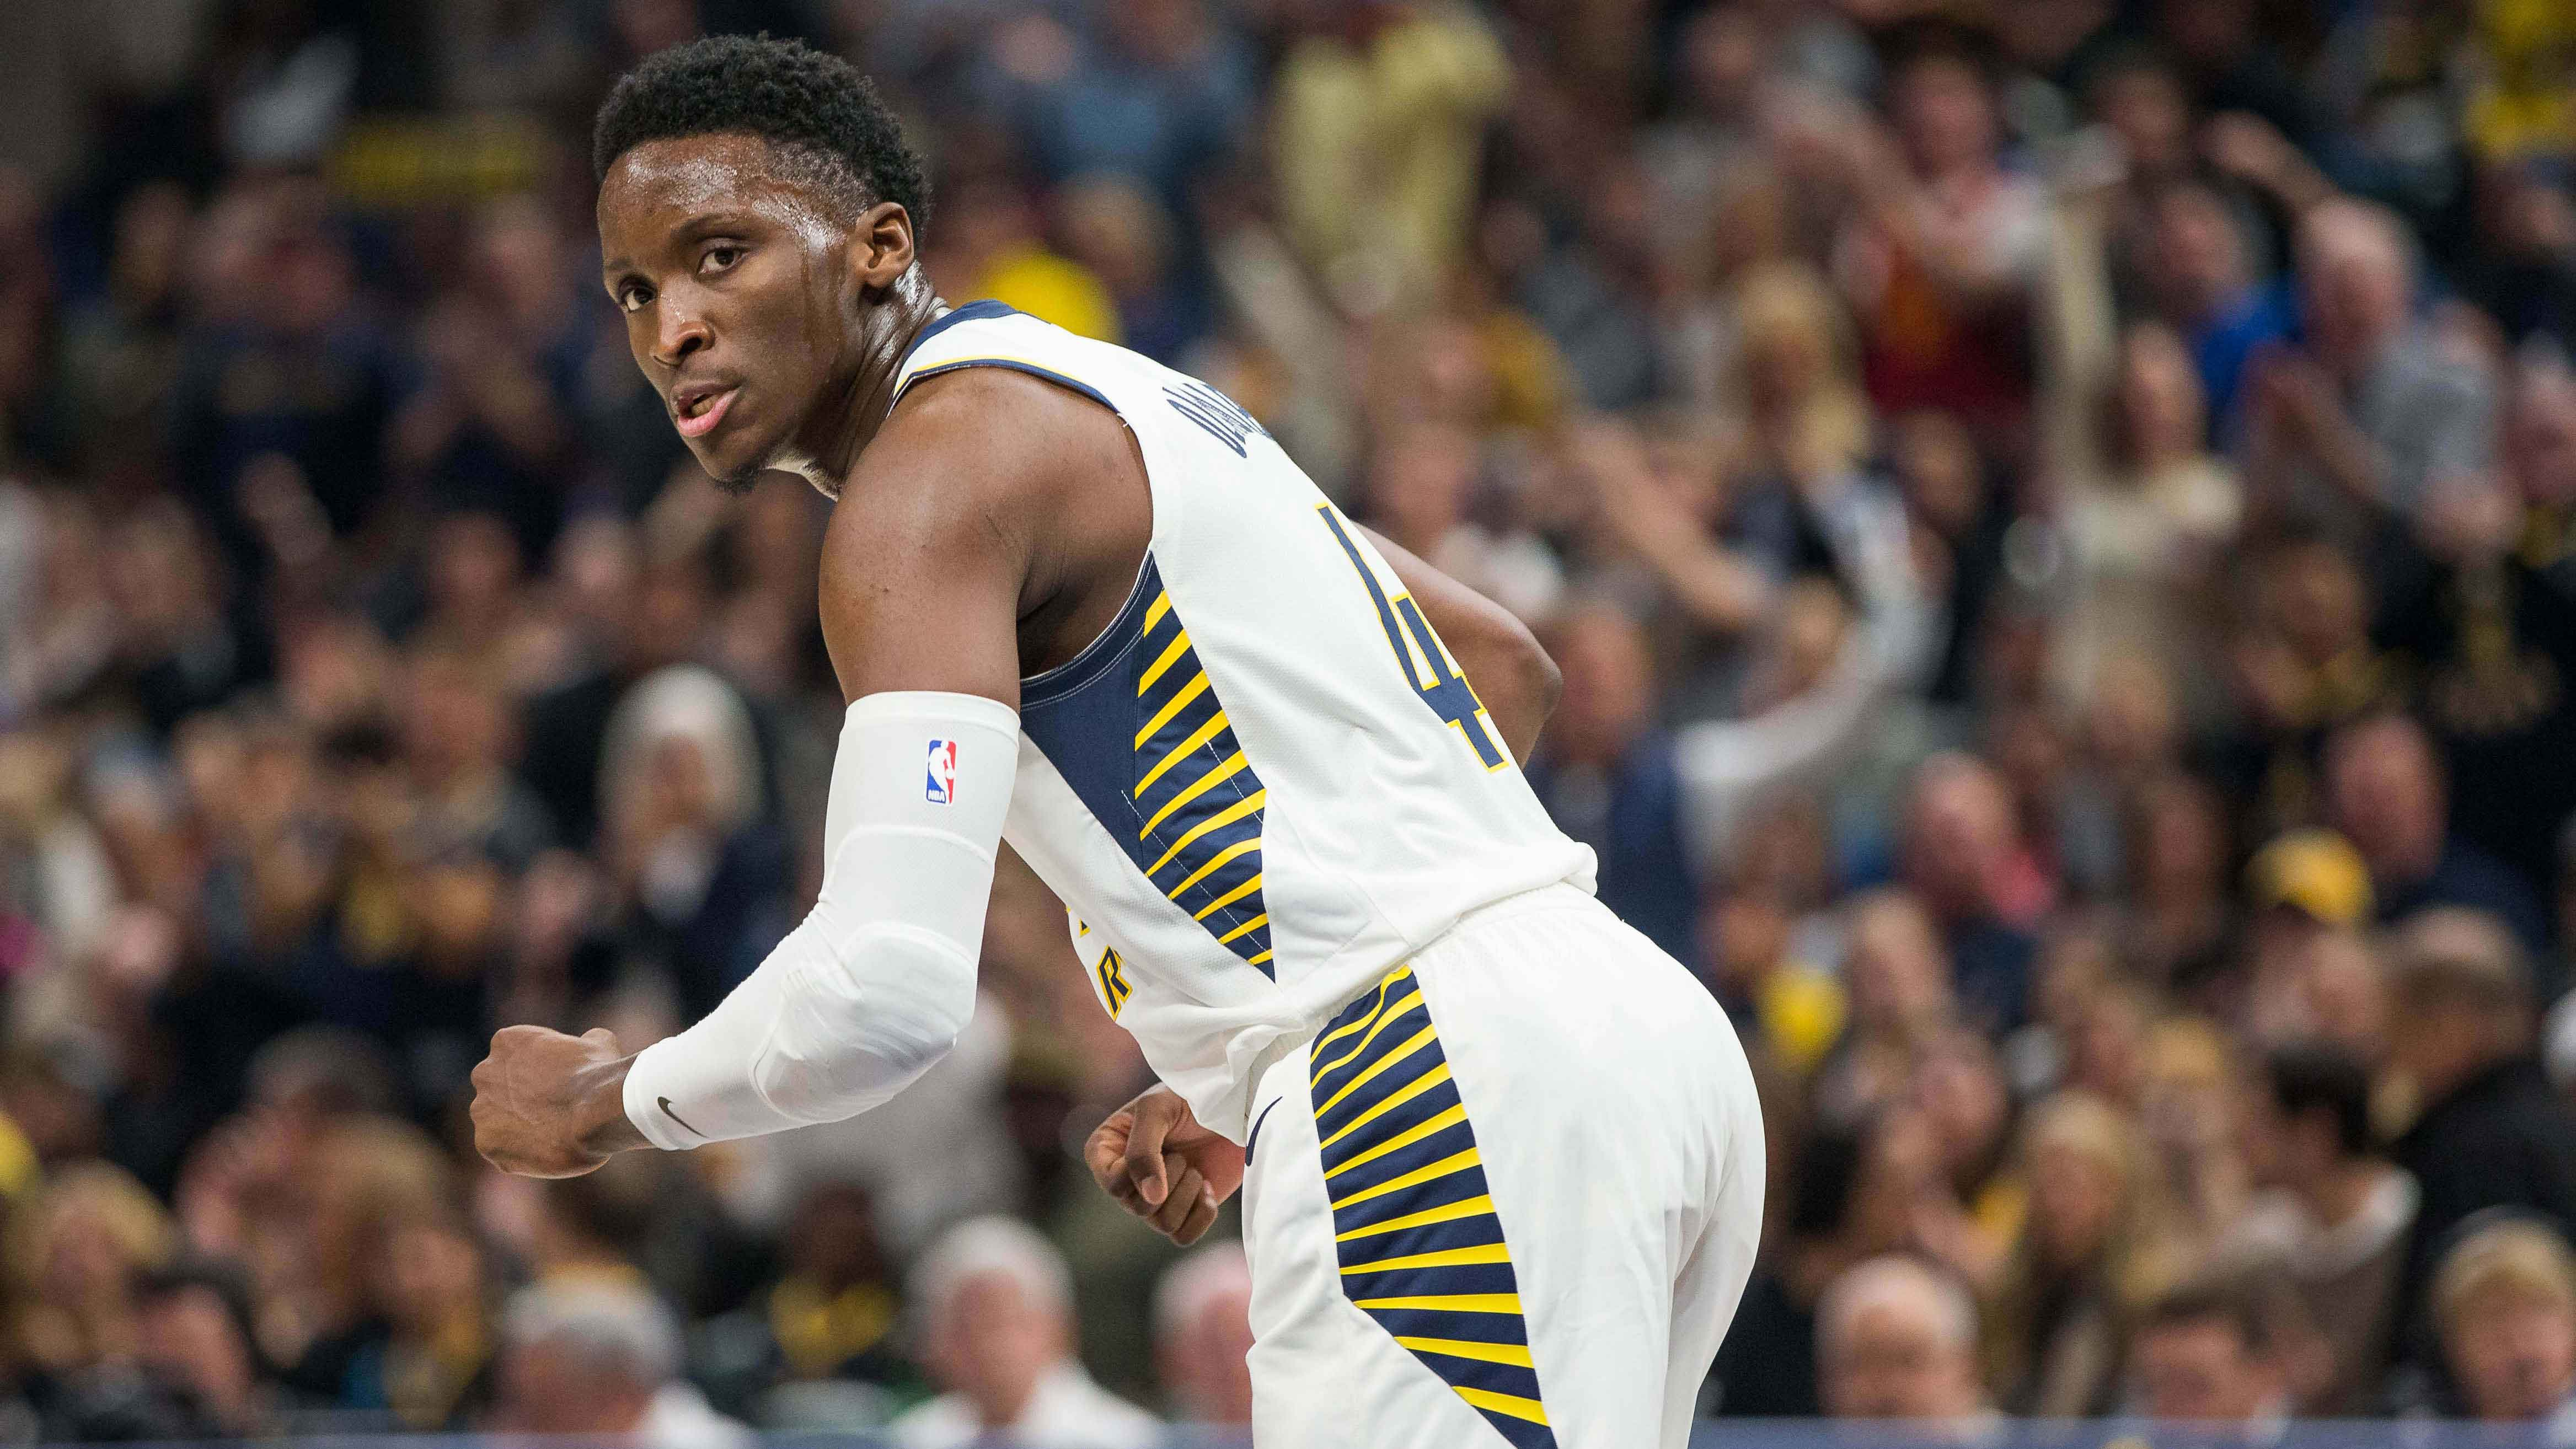 GAME RECAP: Pacers 132, Nets 112